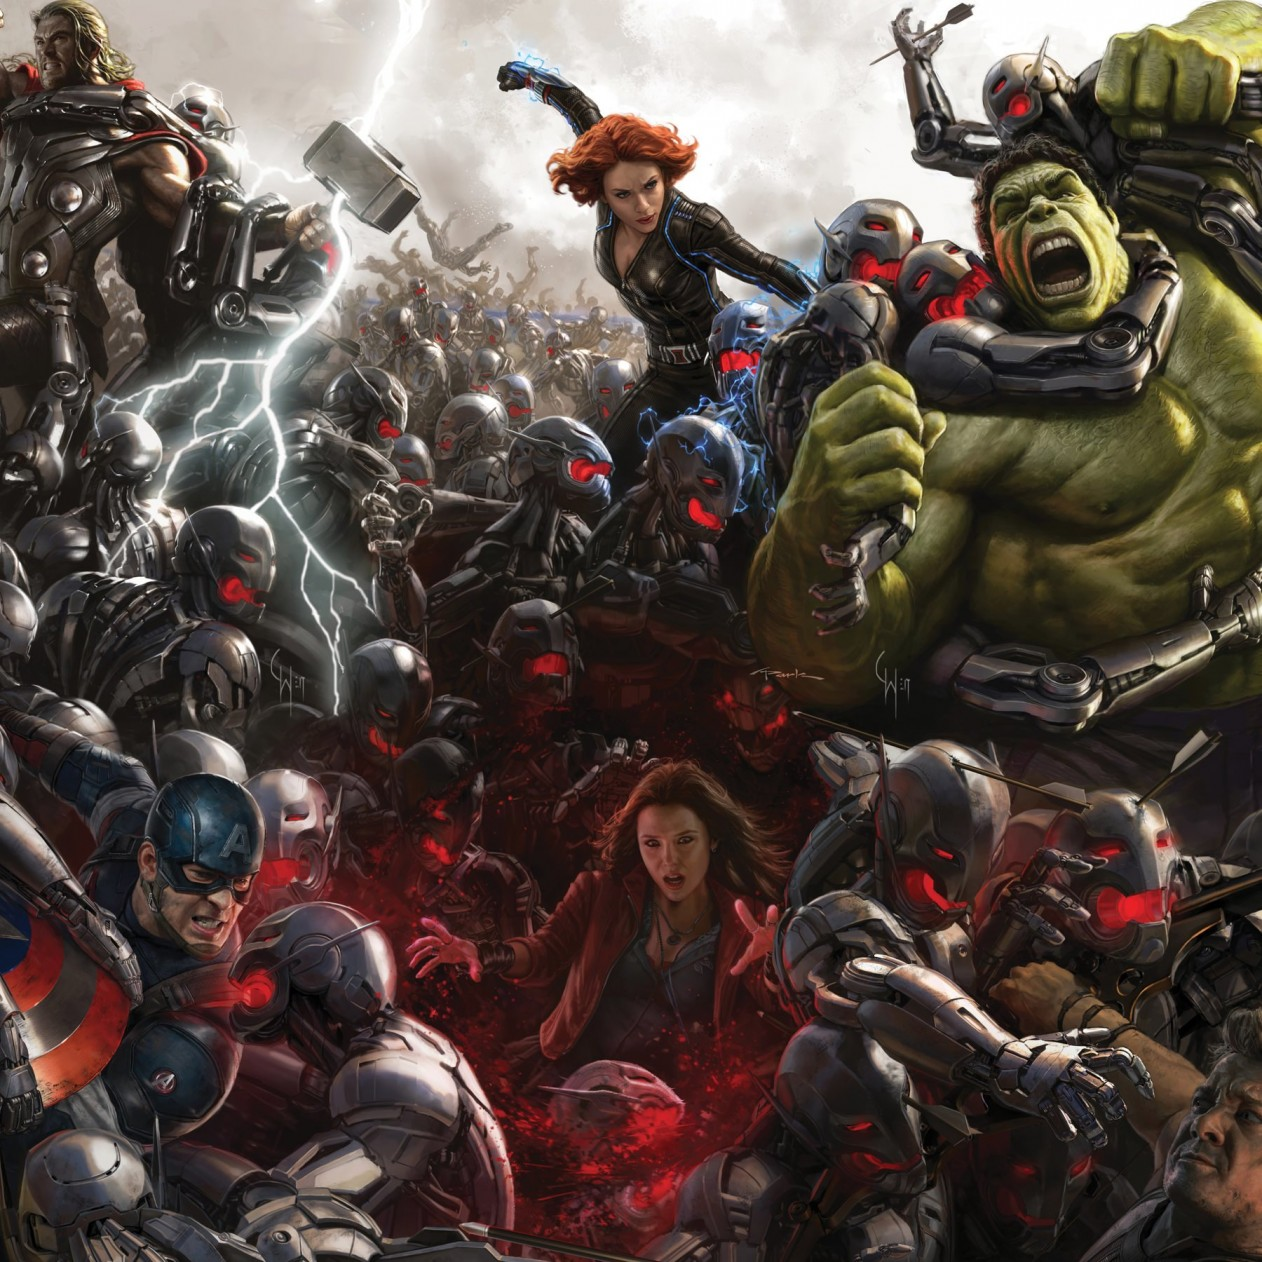 Avengers Age Of Ultron Concept Art Wallpaper for Apple iPad mini